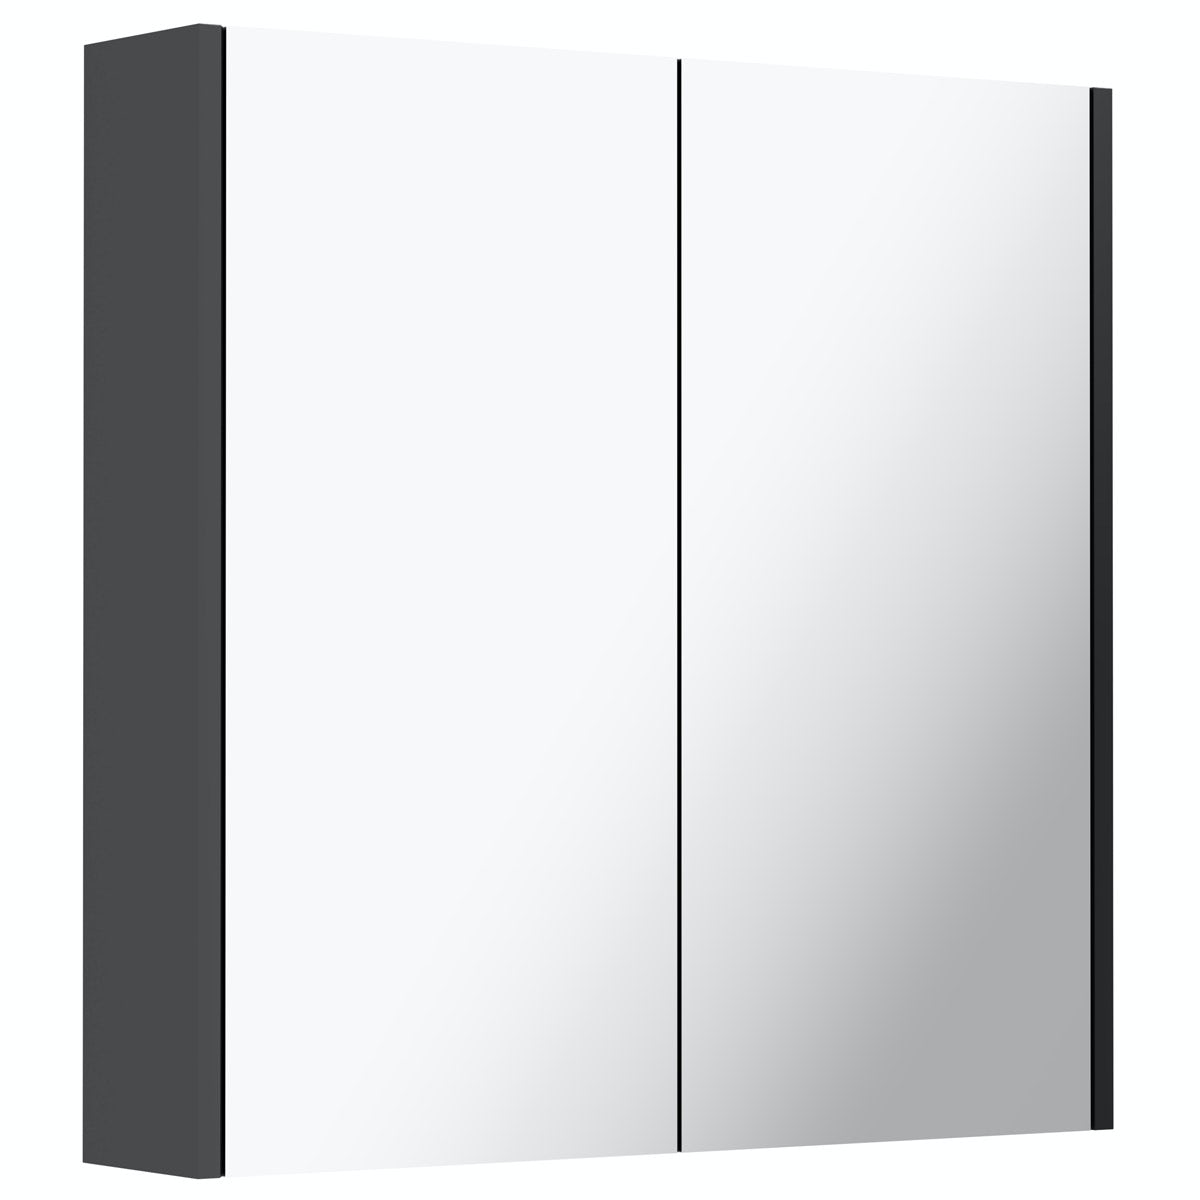 Mode Tate anthracite mirror cabinet 650mm